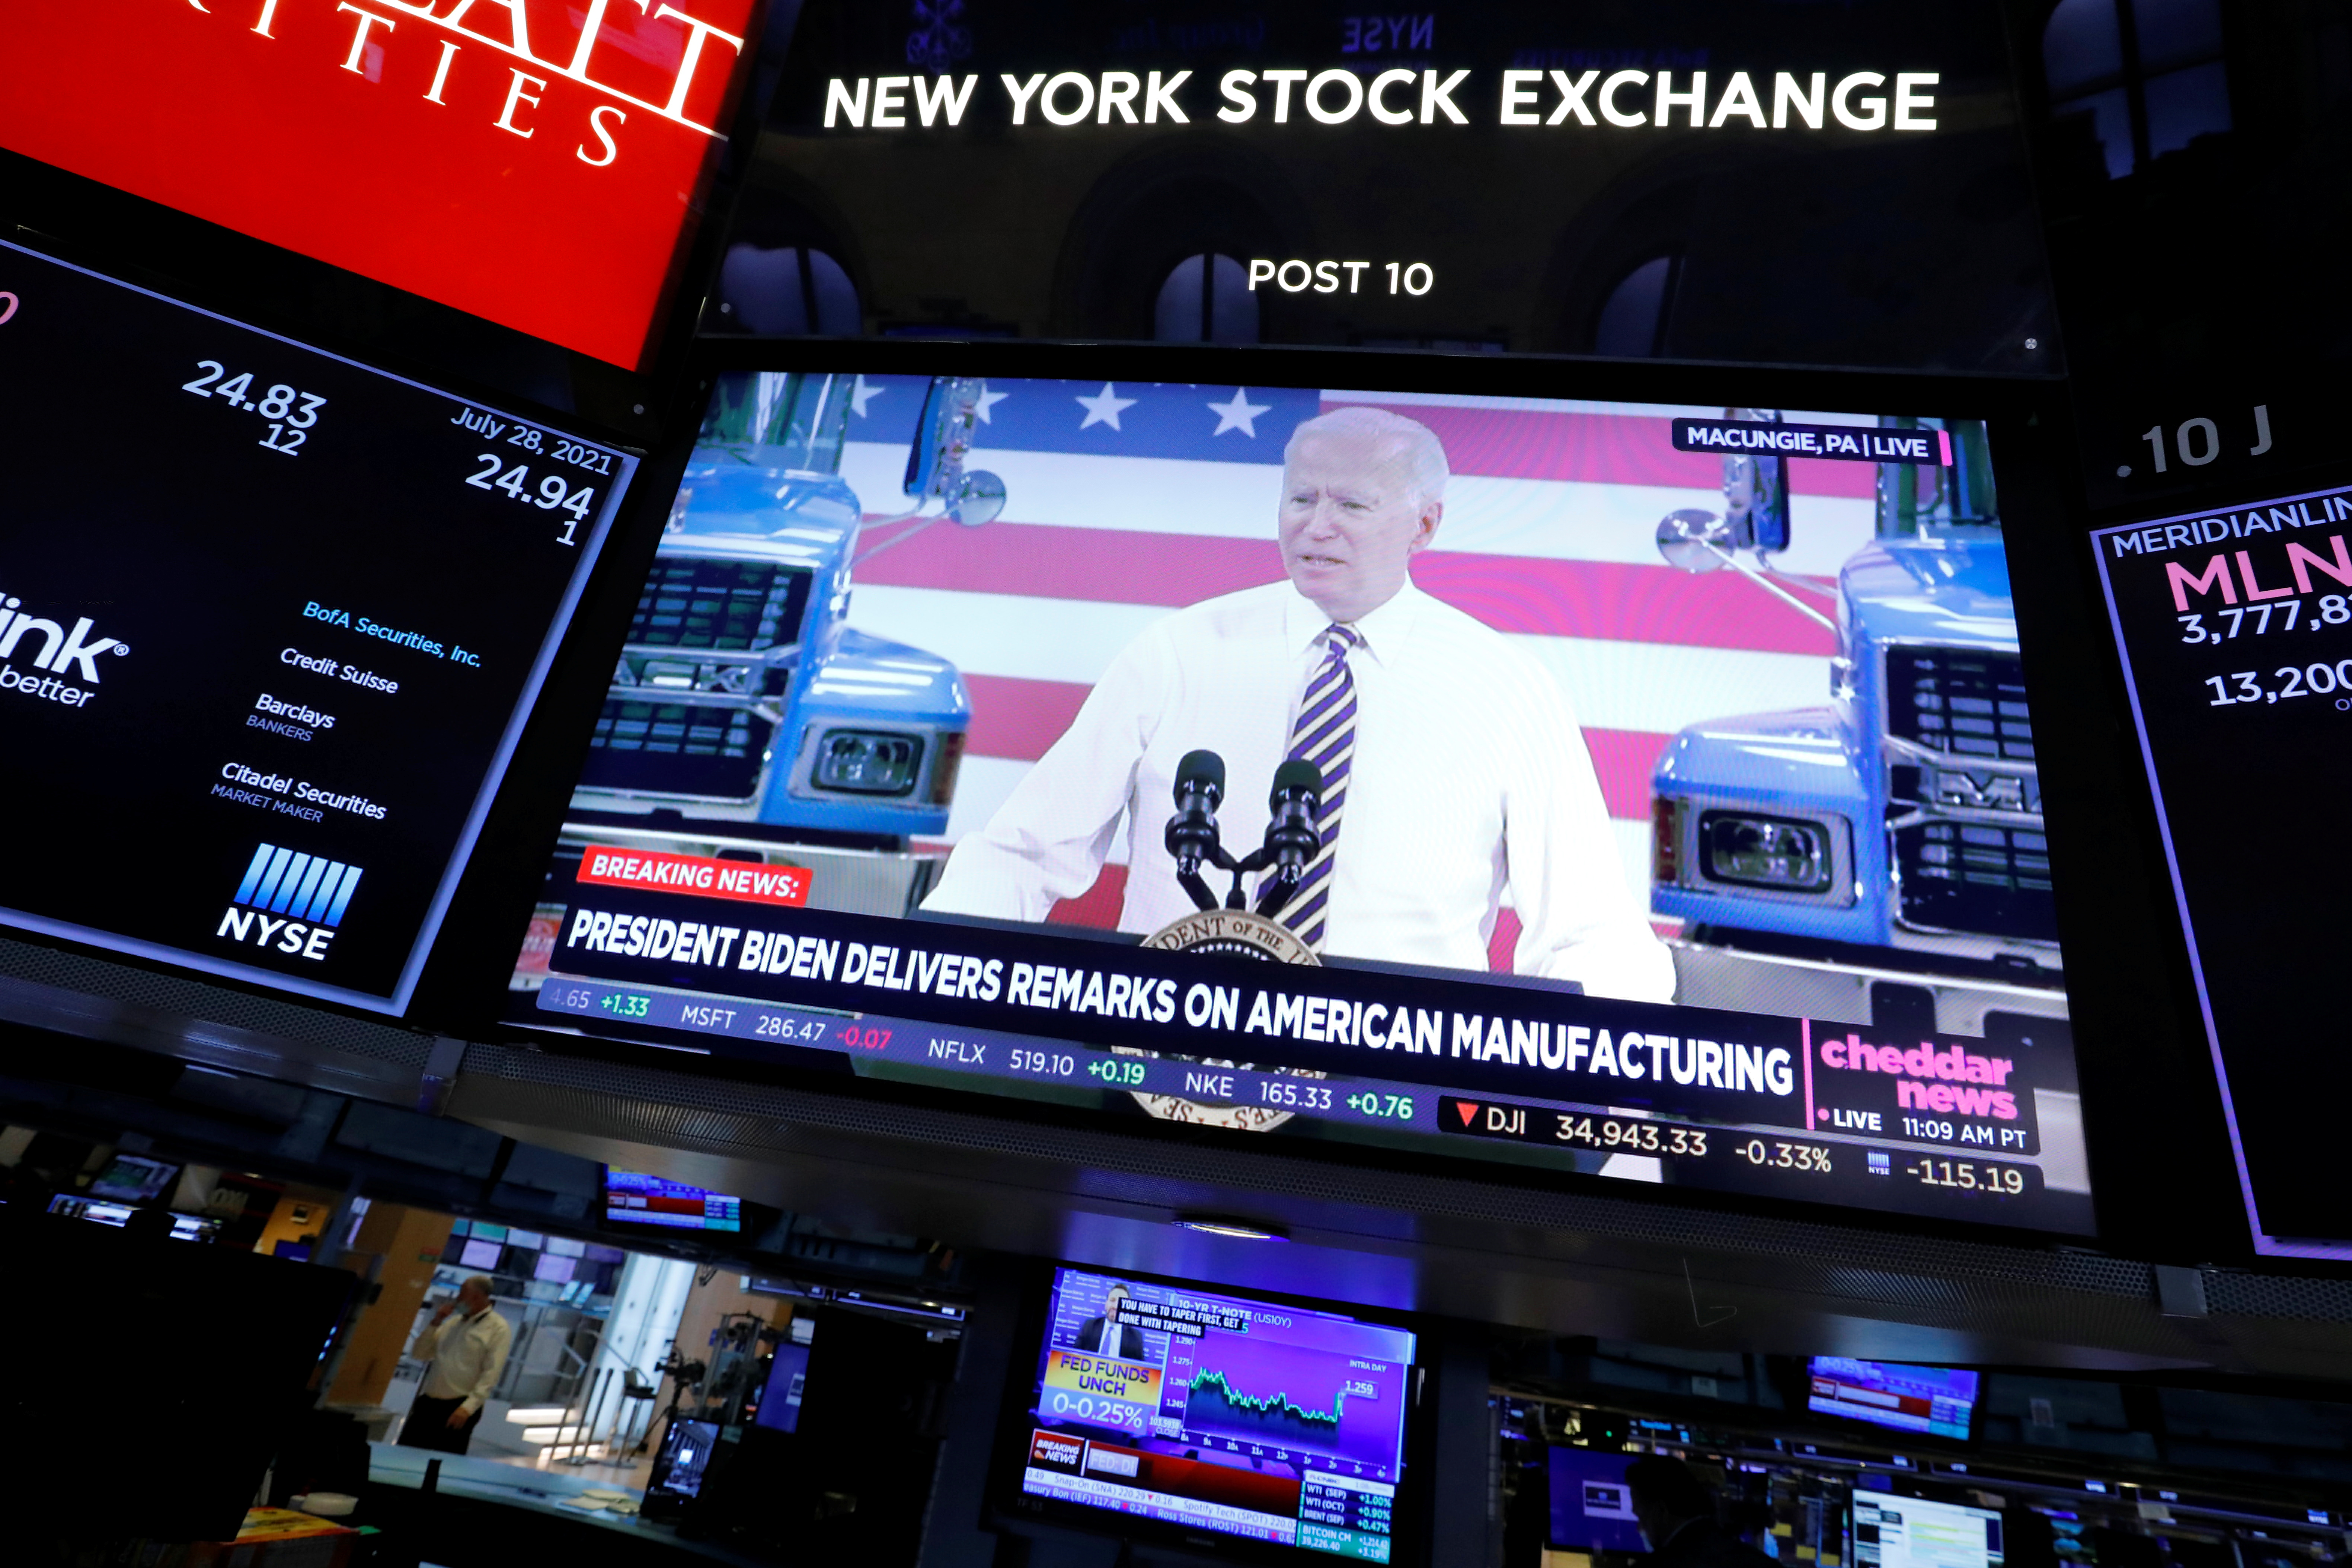 A screen displays the U.S. President Joe Biden's remarks on American manufacturing on the trading floor at New York Stock Exchange (NYSE) in New York City, New York, U.S., July 28, 2021. REUTERS/Andrew Kelly